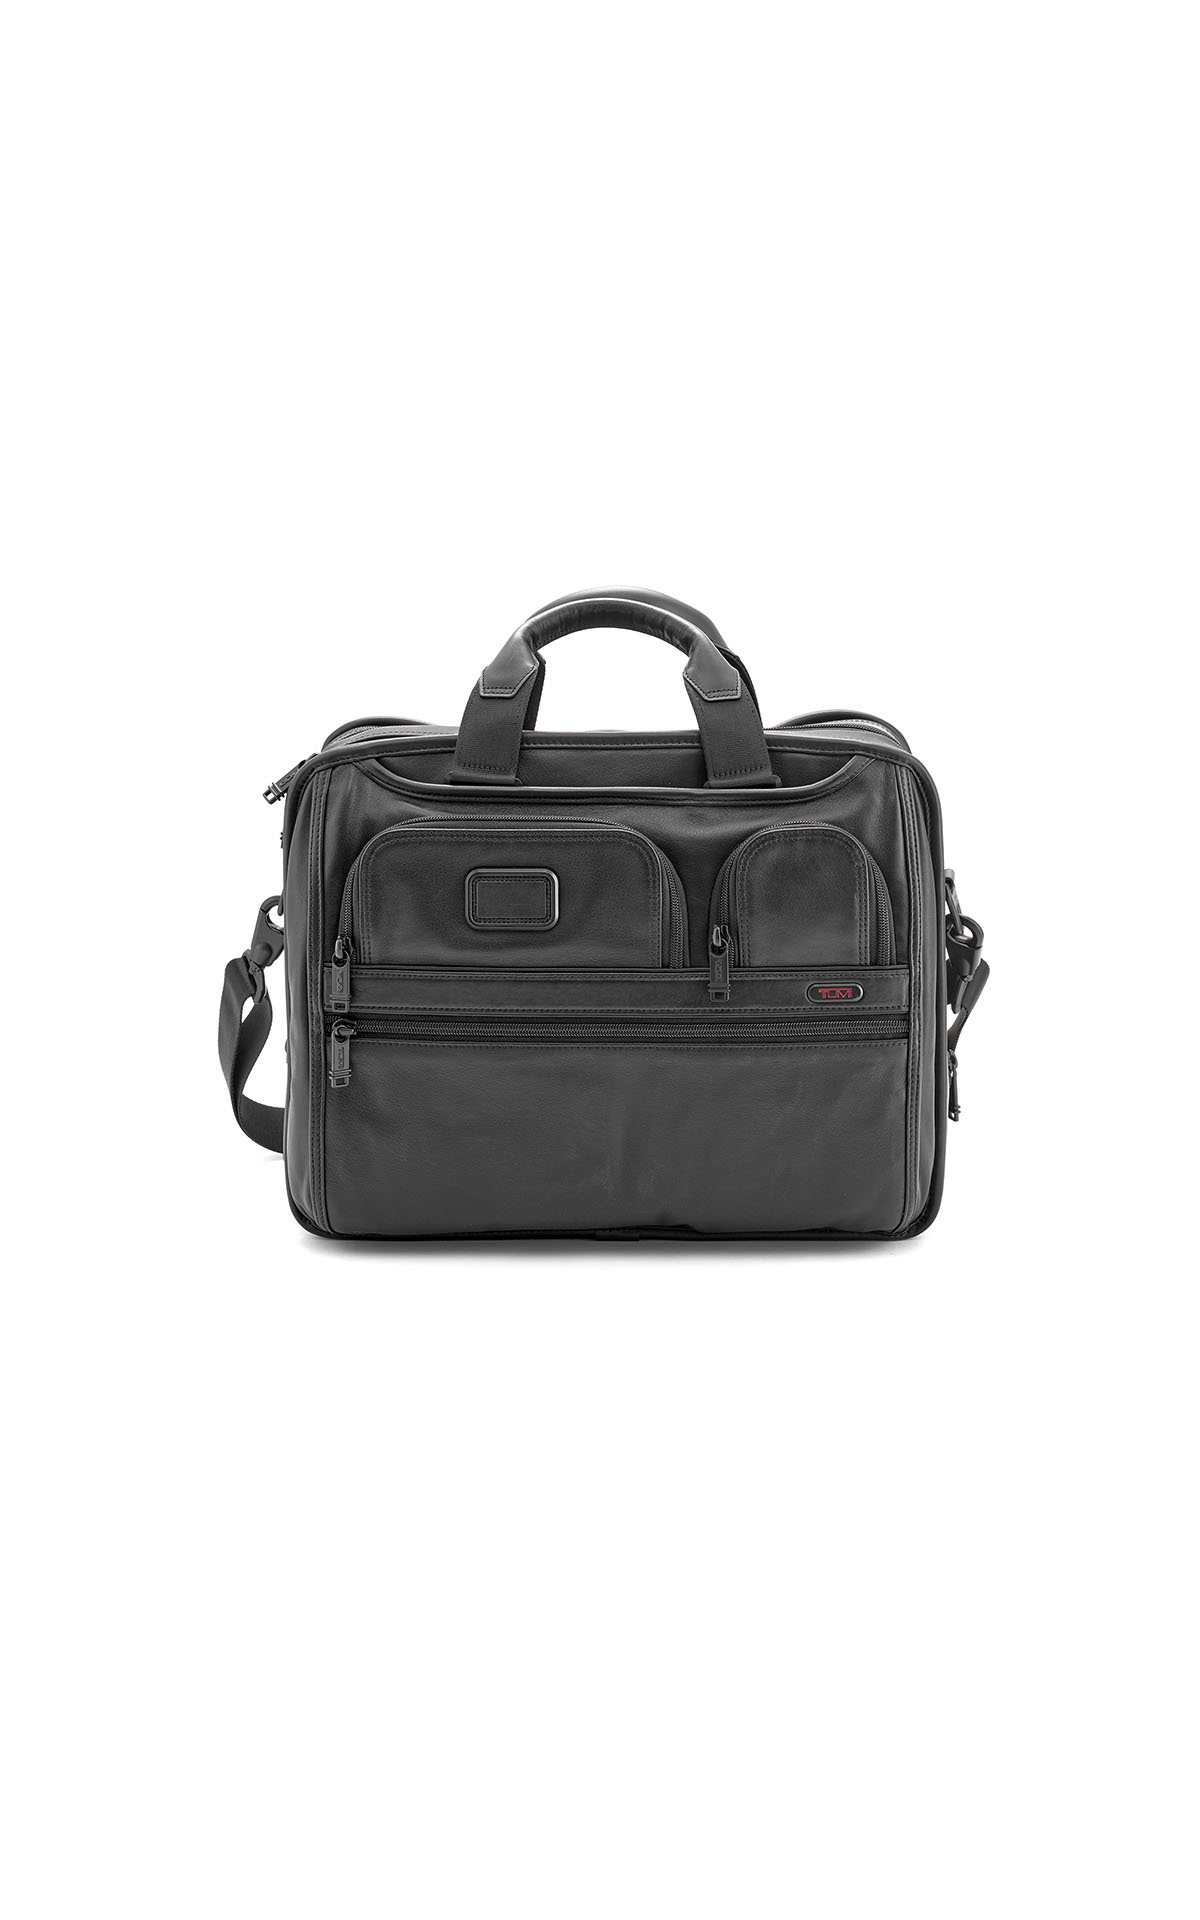 Tumi Exp Org Laptop Brief at The Bicester Village Shopping Collection